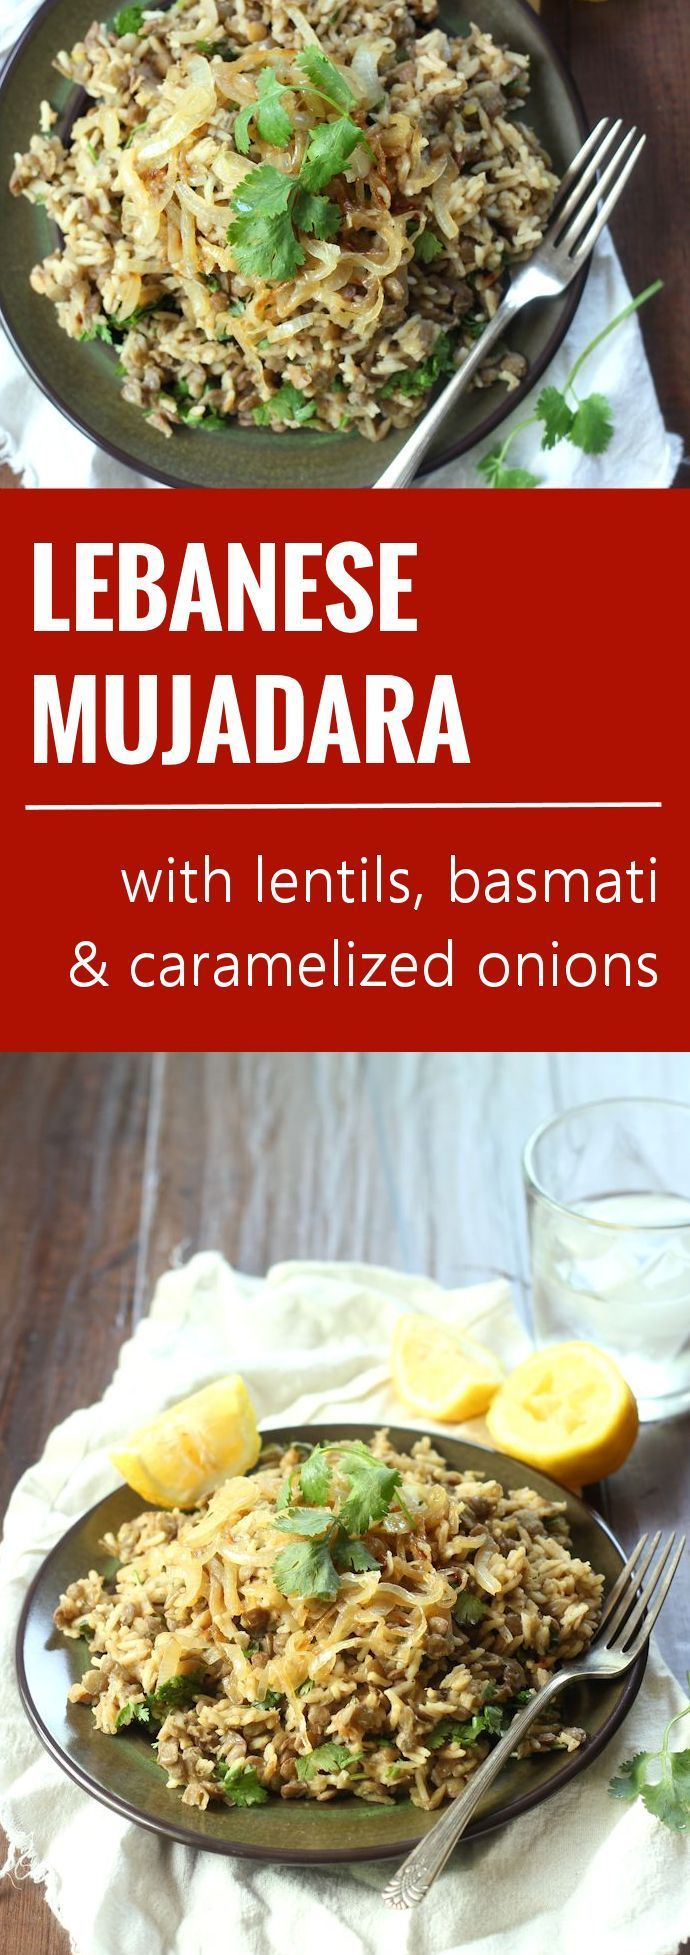 Lebanese spiced lentils and basmati rice are tossed with caramelized onions and fresh cilantro in this savory vegan mujadara.